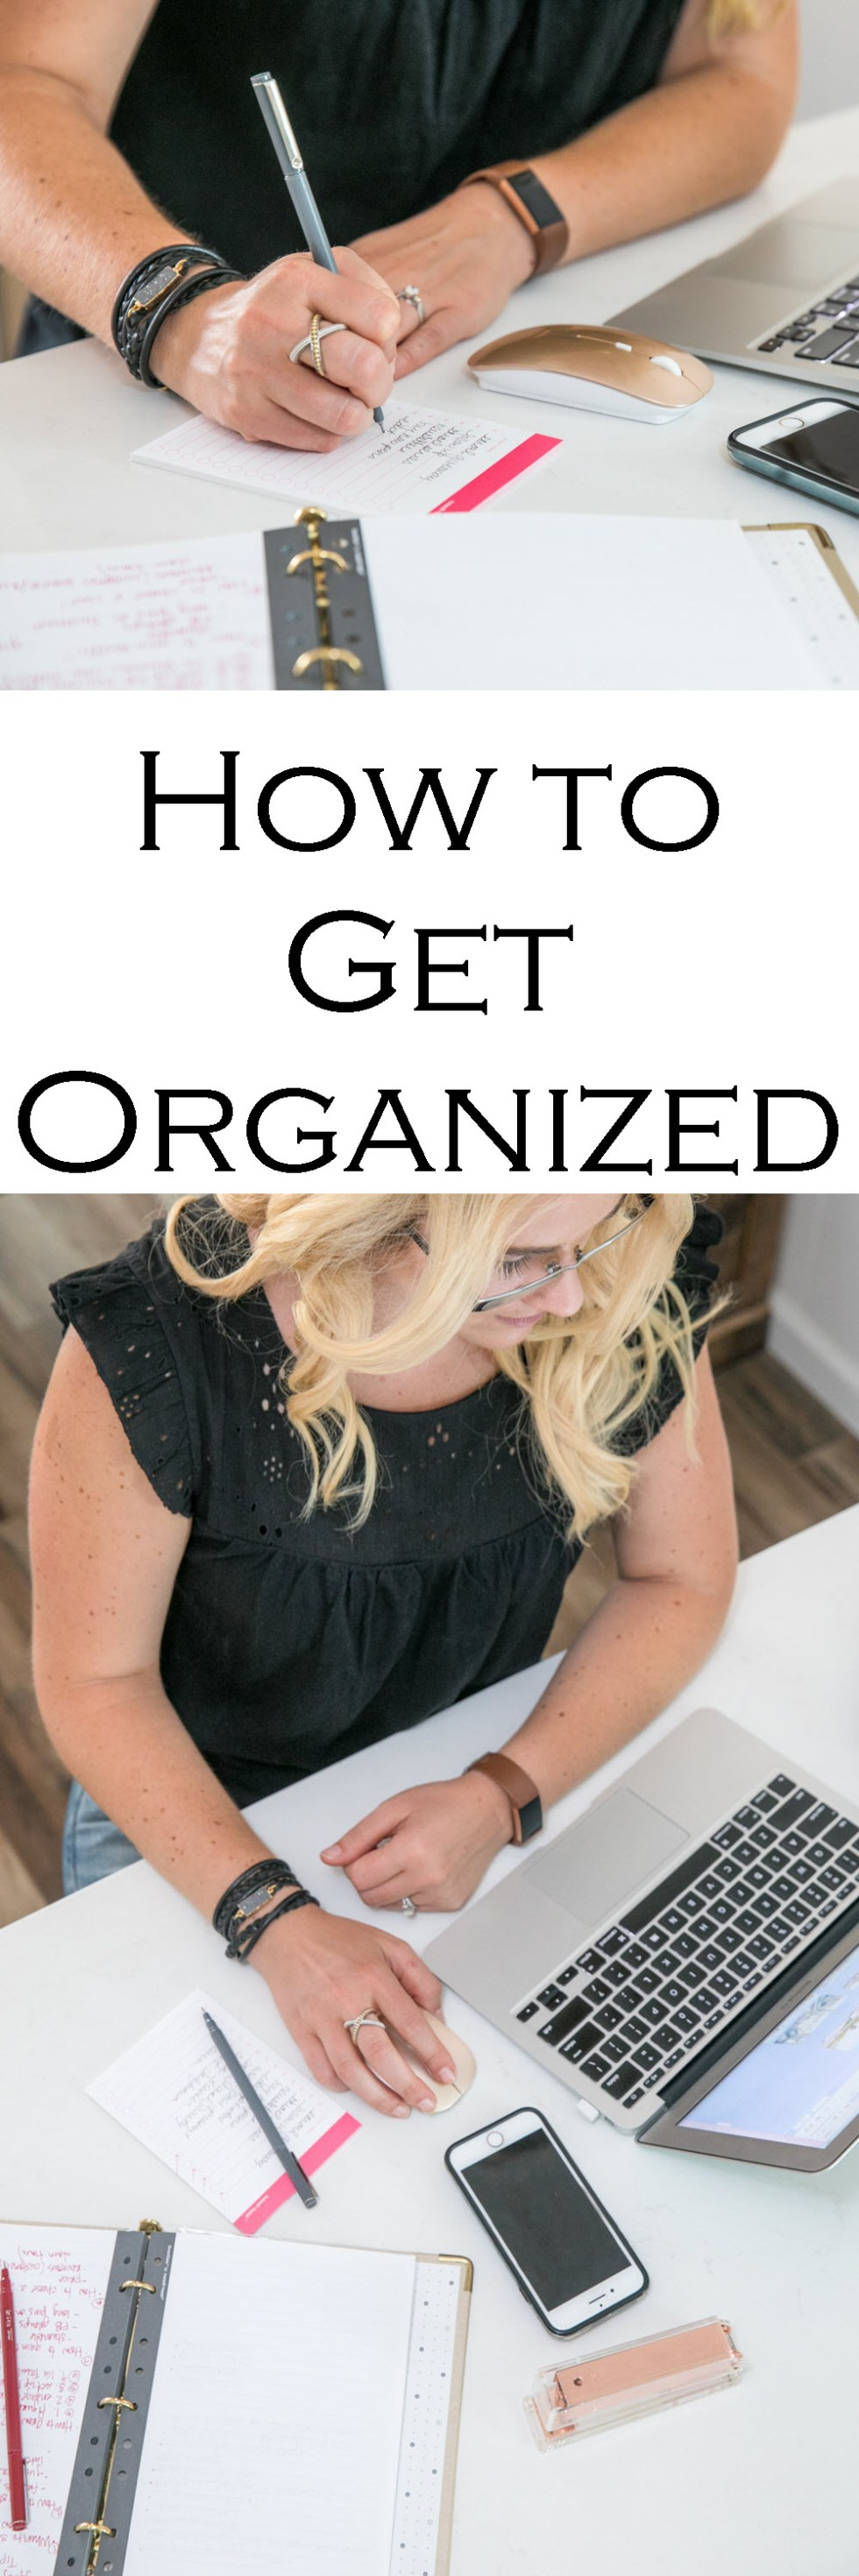 How to Get Organized as a Blogger | Gold Binder Agenda - Russell + Hazel Mini Binder System Review